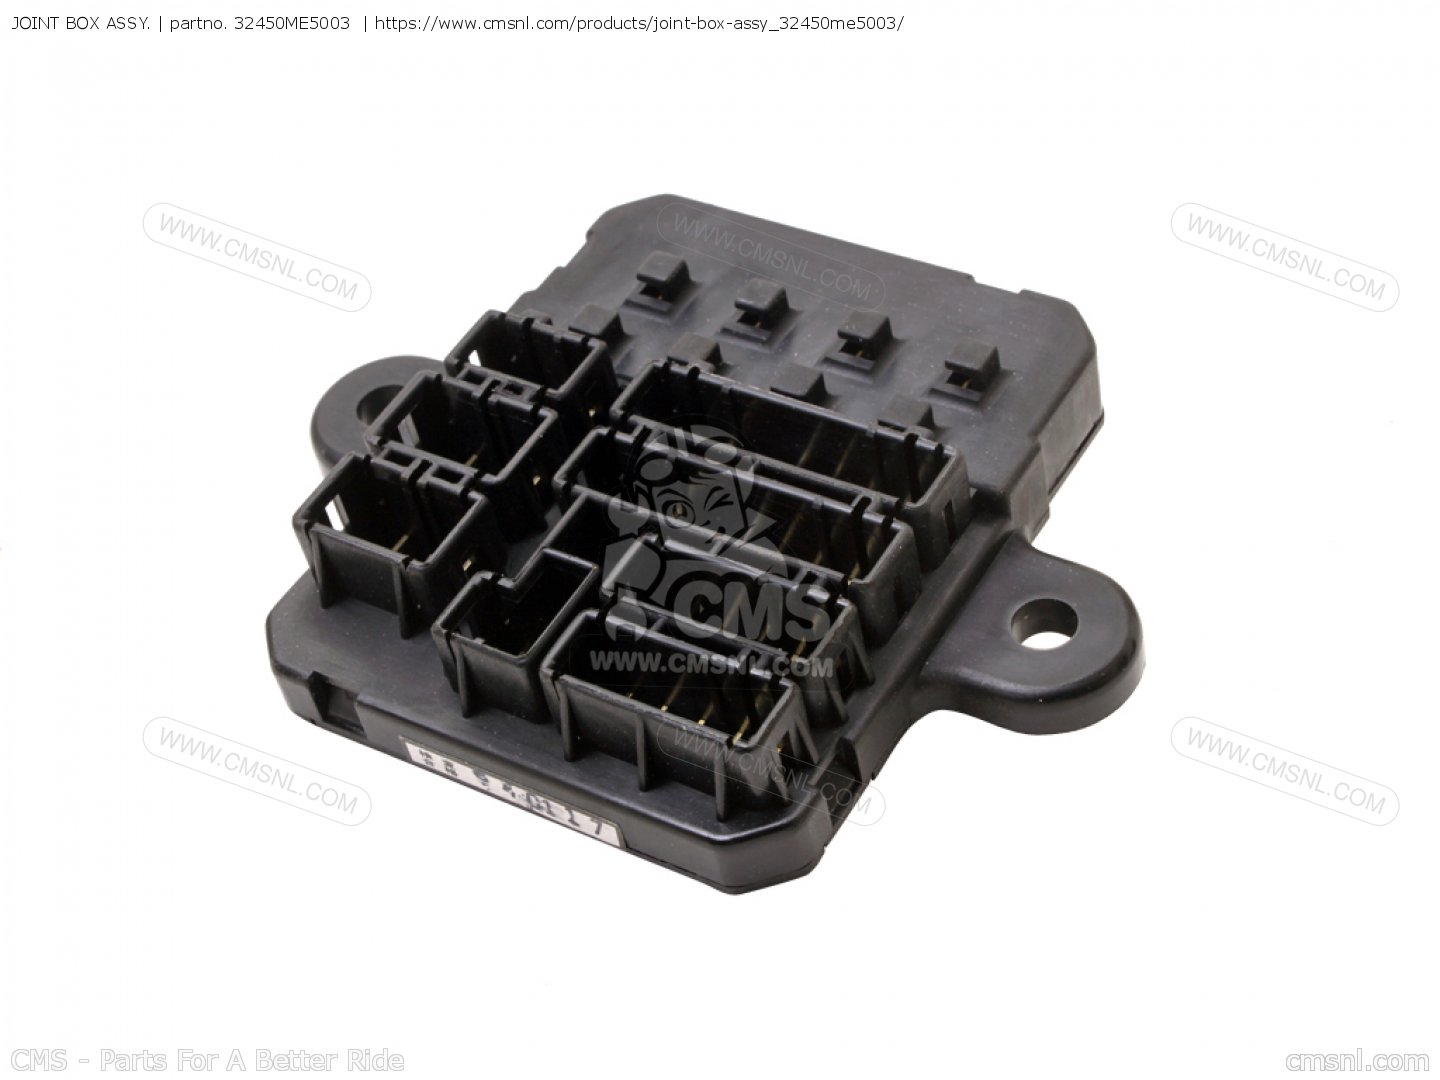 joint box assy_big32450ME5003 01_d125 joint box assy cb550sc nighthawk 1983 (d) usa 32450me5003 1983 honda nighthawk 550 fuse box at aneh.co